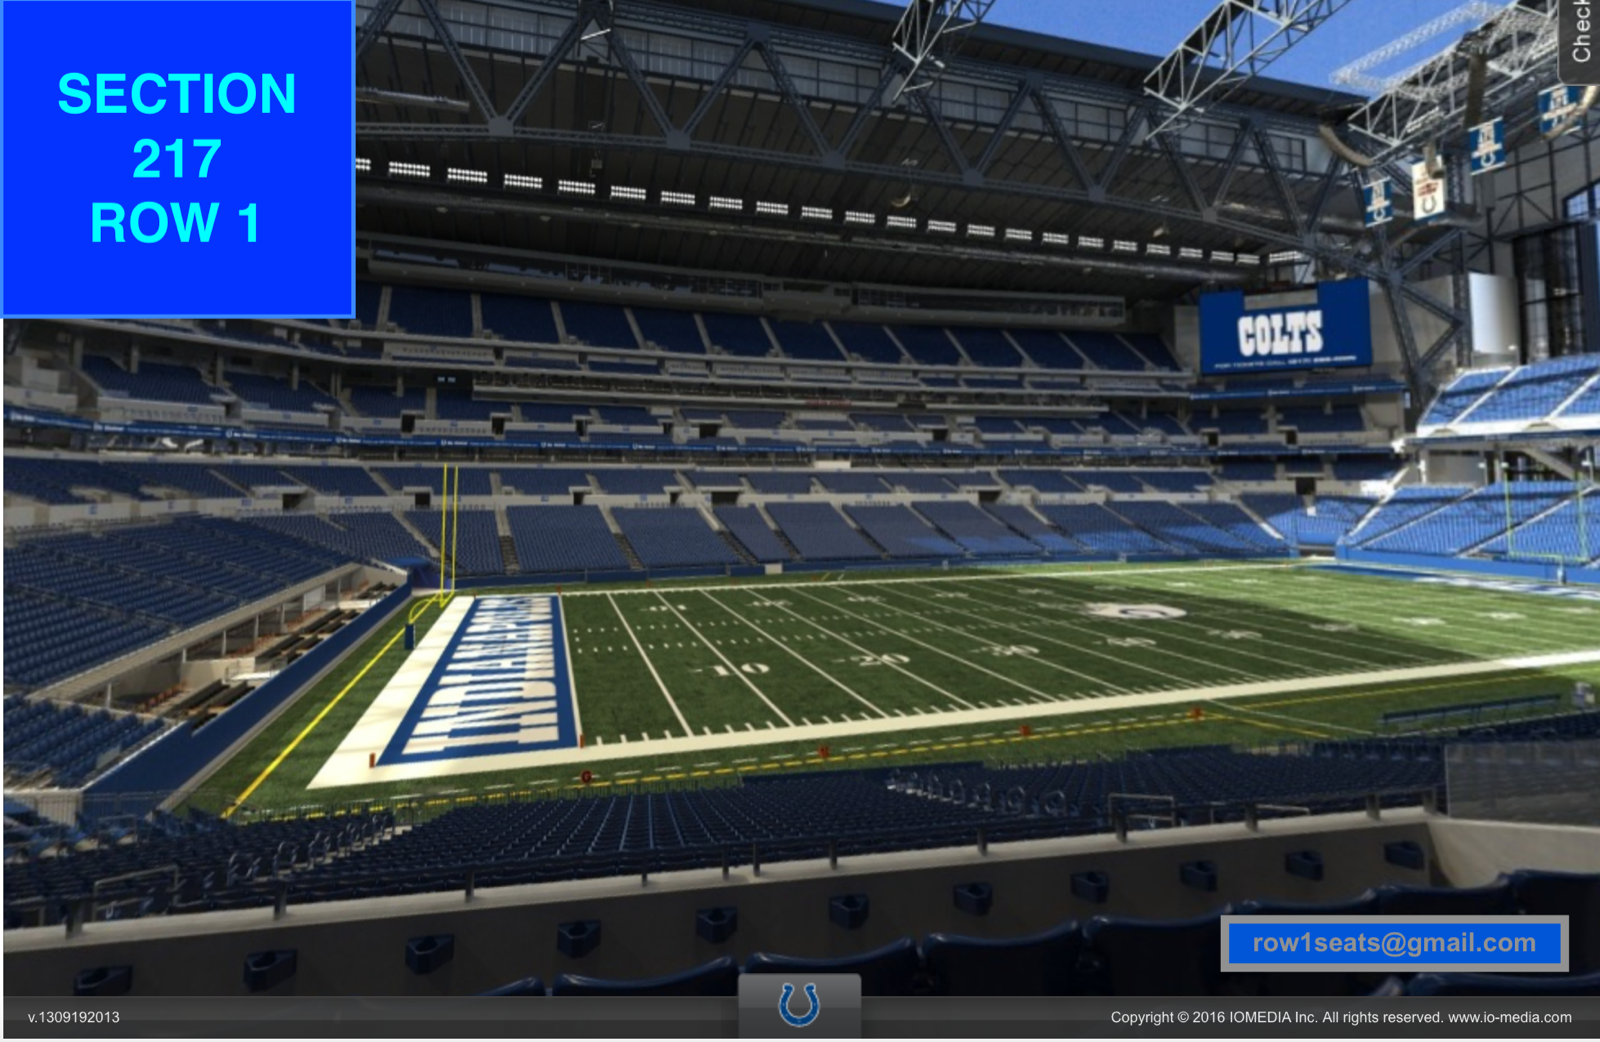 bbd52927 Details about 4 Front row Chicago Bears at Indianapolis Colts preseason  tickets Sec 217 row 1